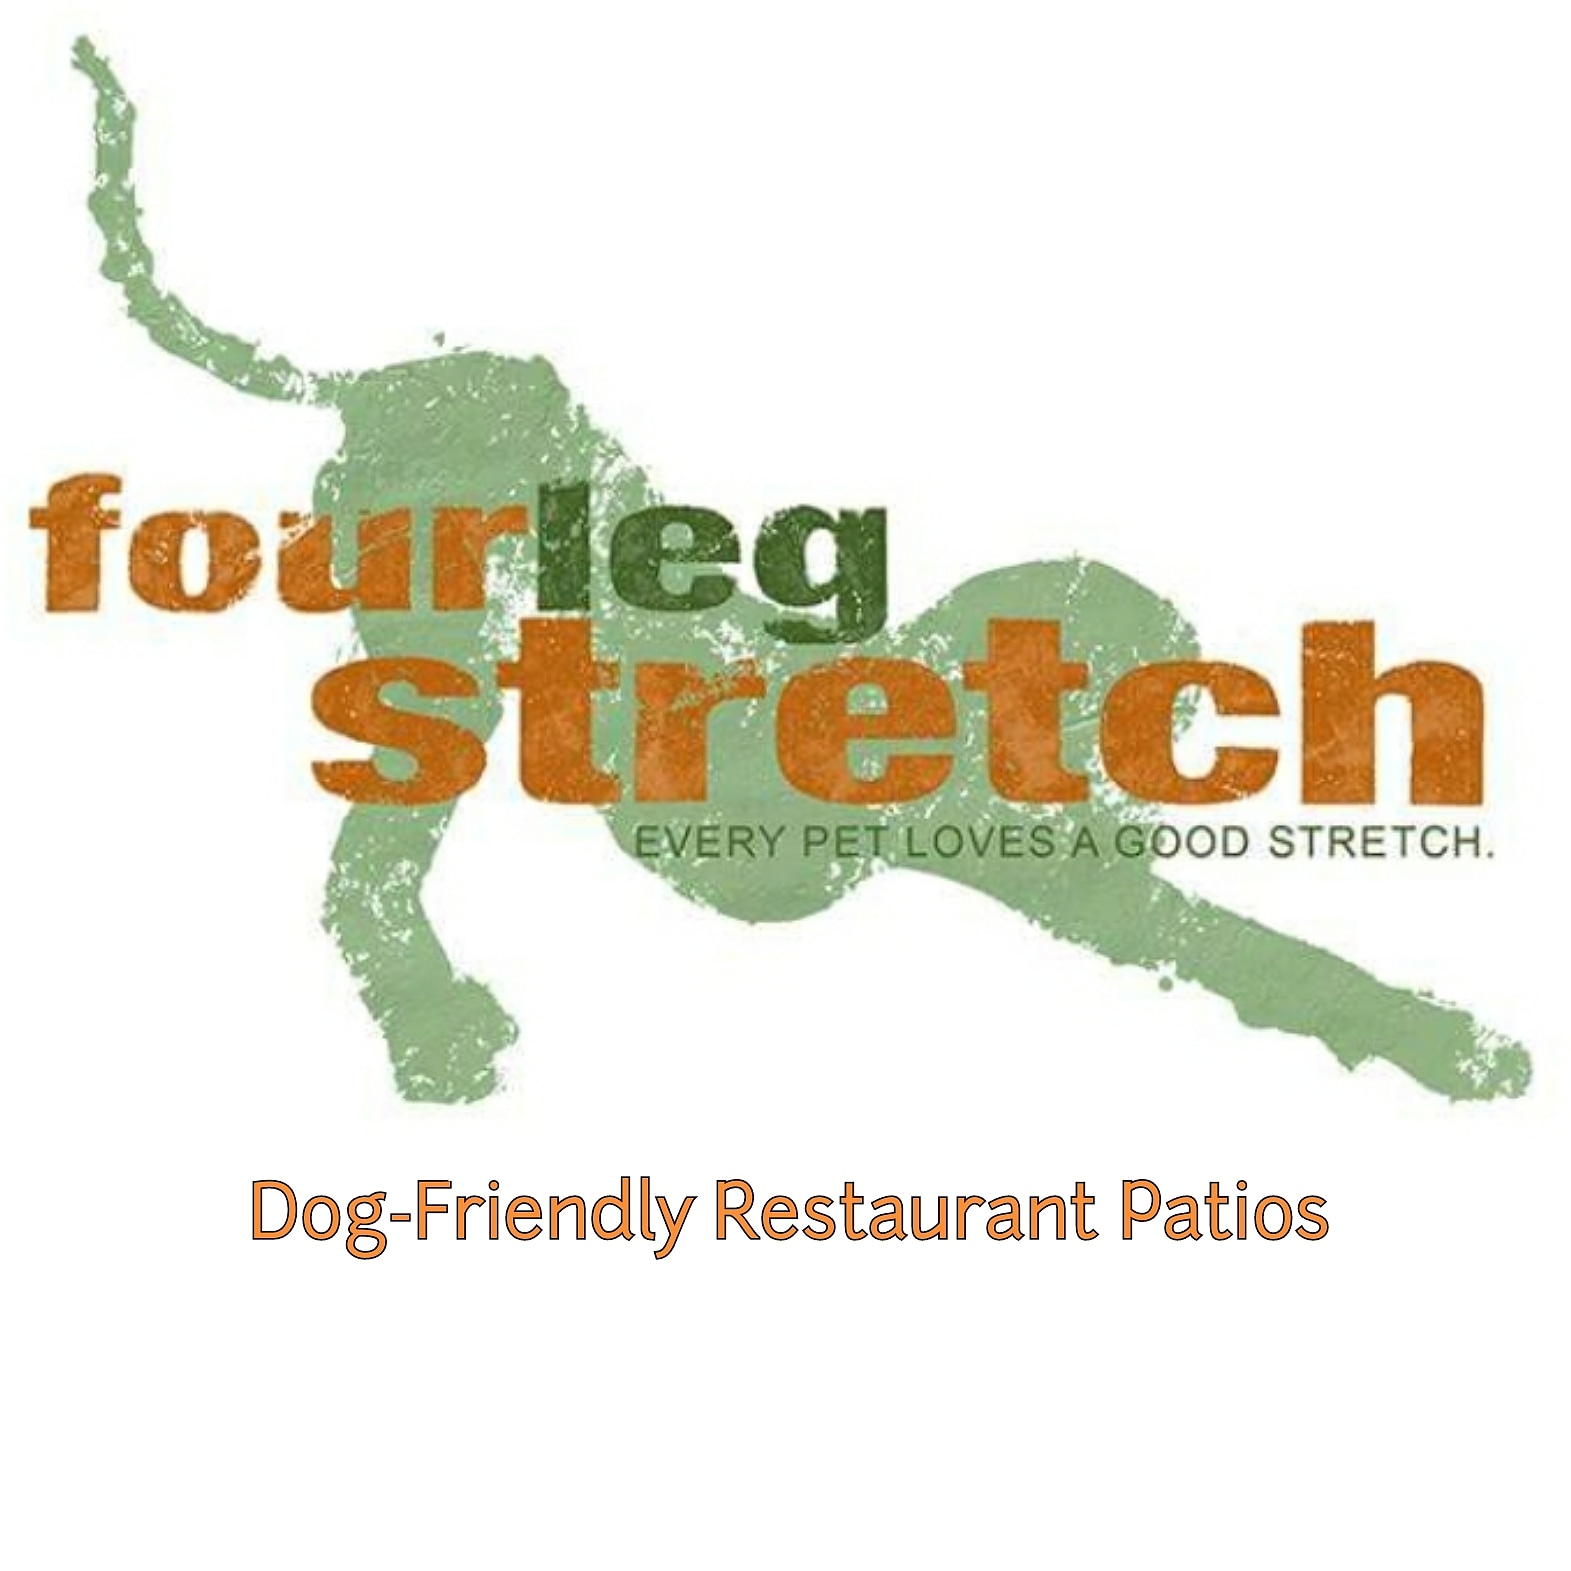 Dog-Friendly Restaurant Patios